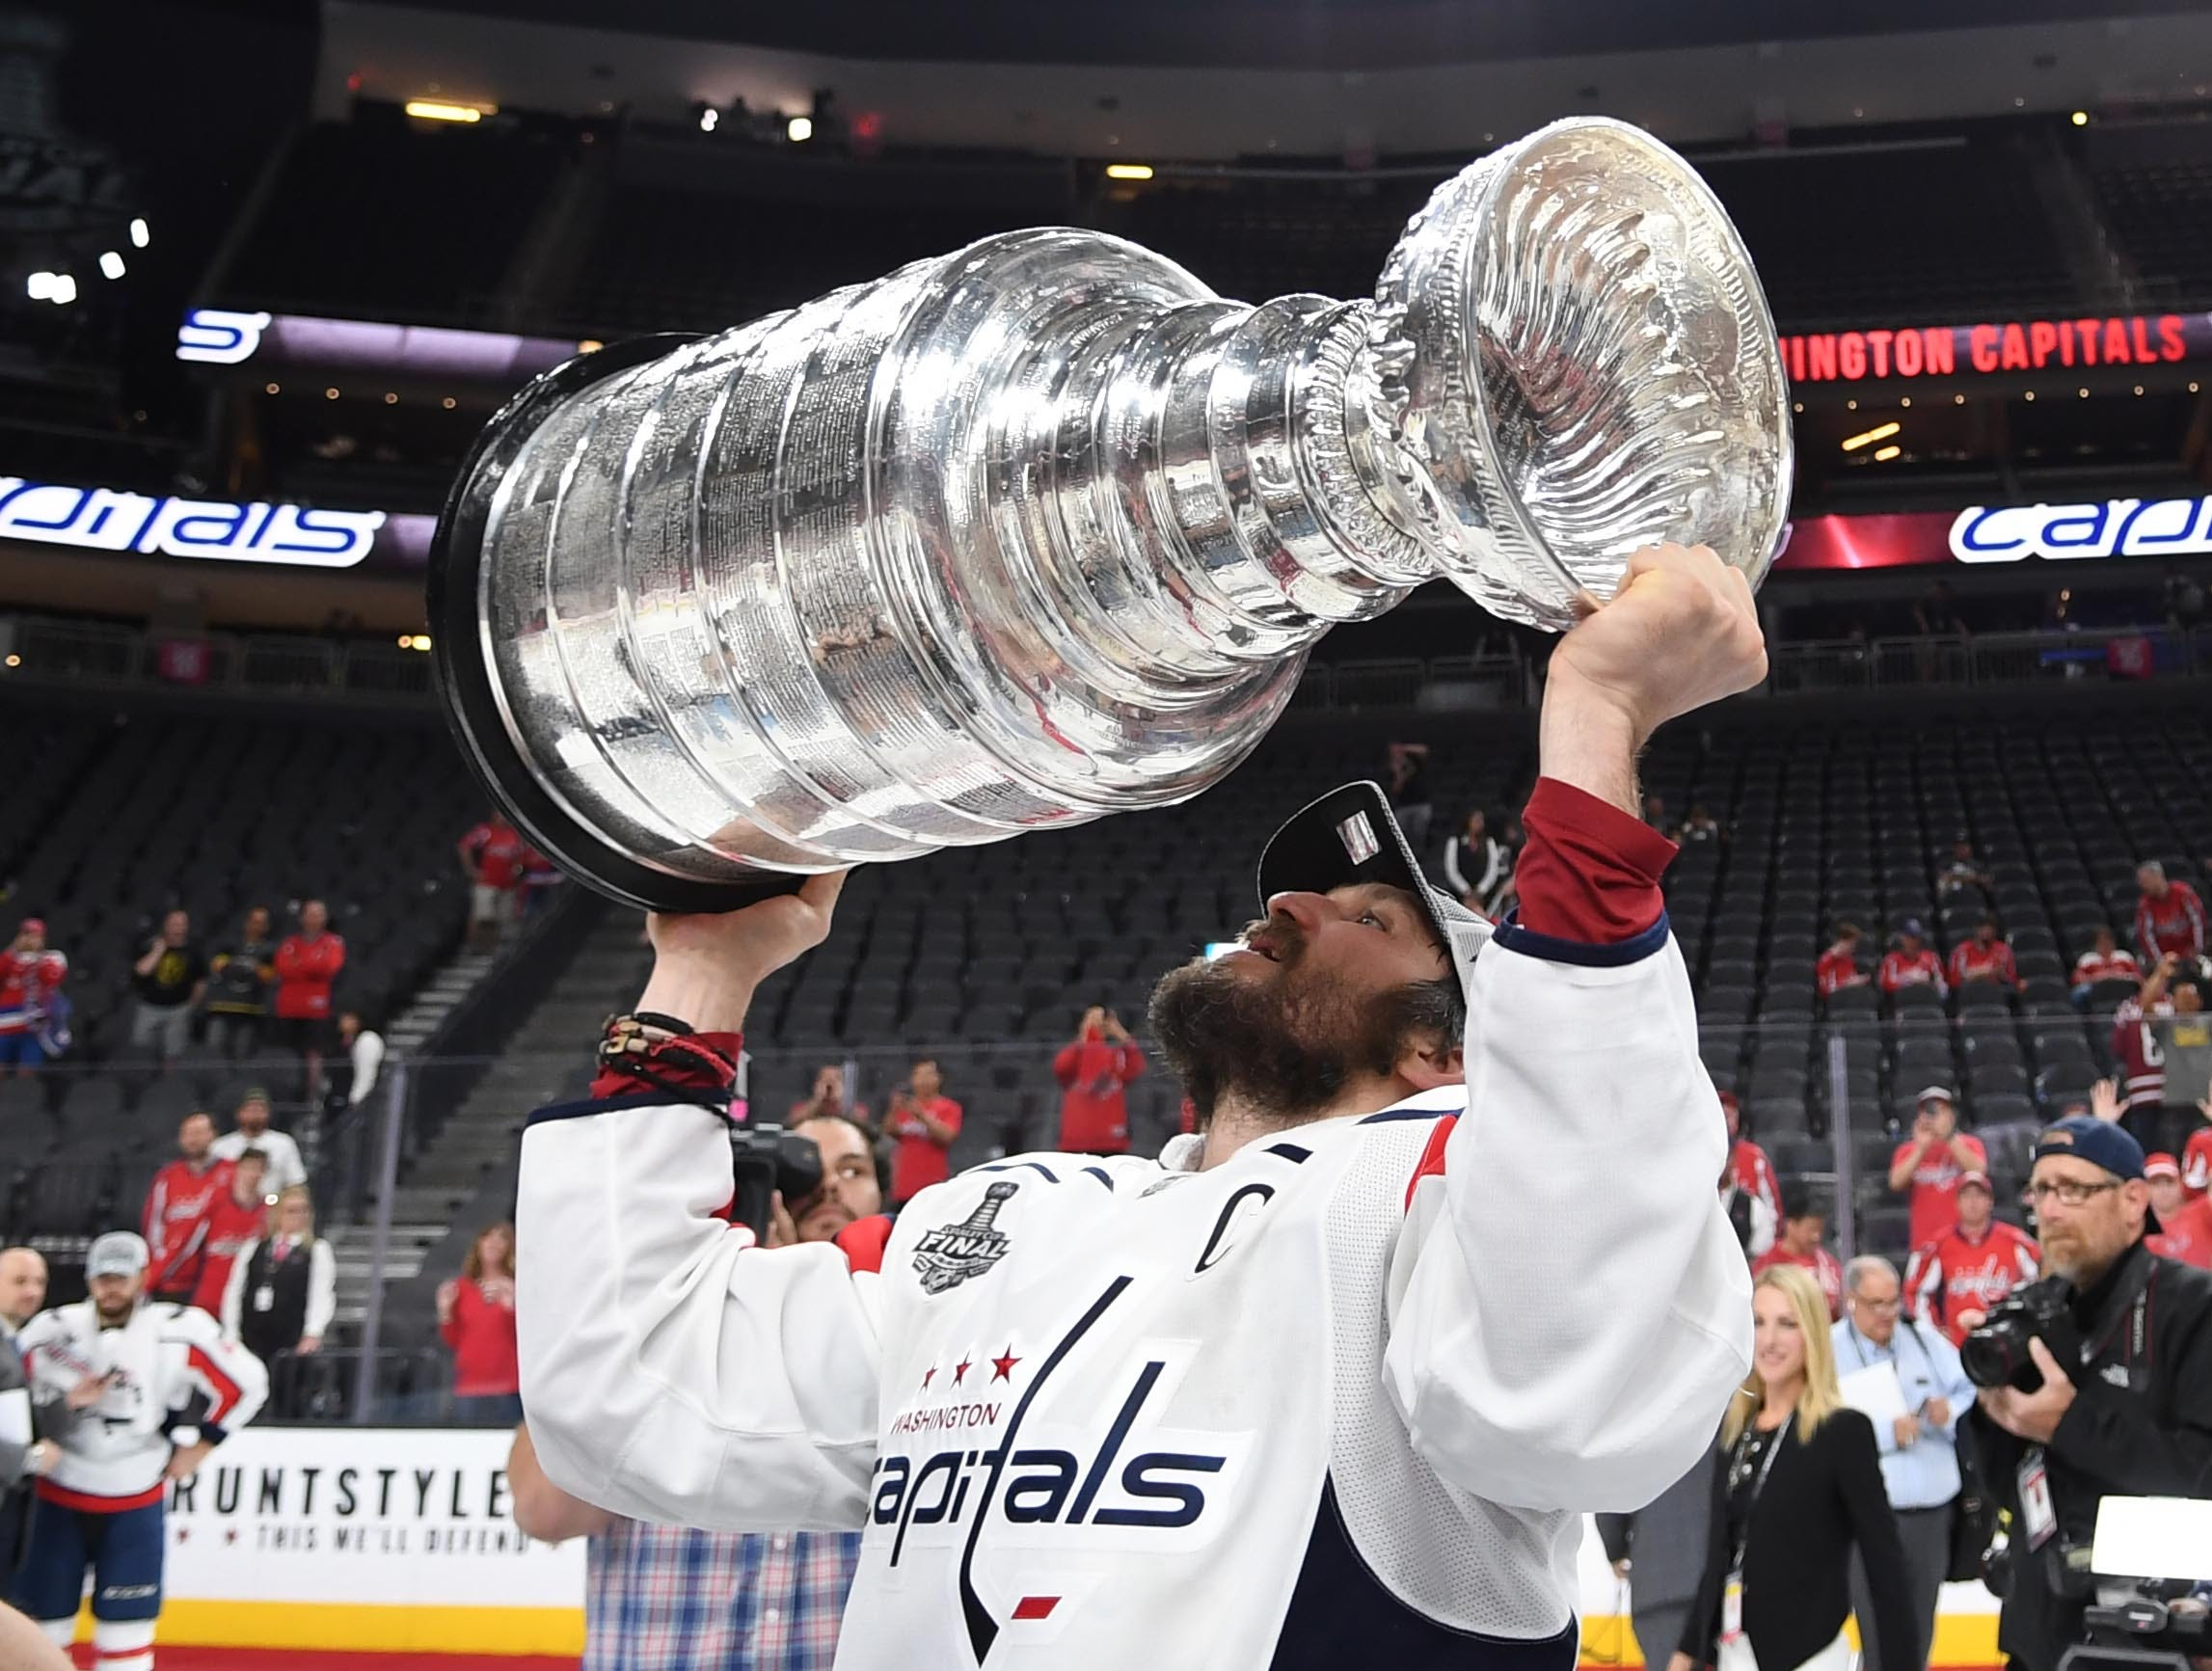 Stanley Cup playoff schedule: Results, dates, times, TV for NHL postseason